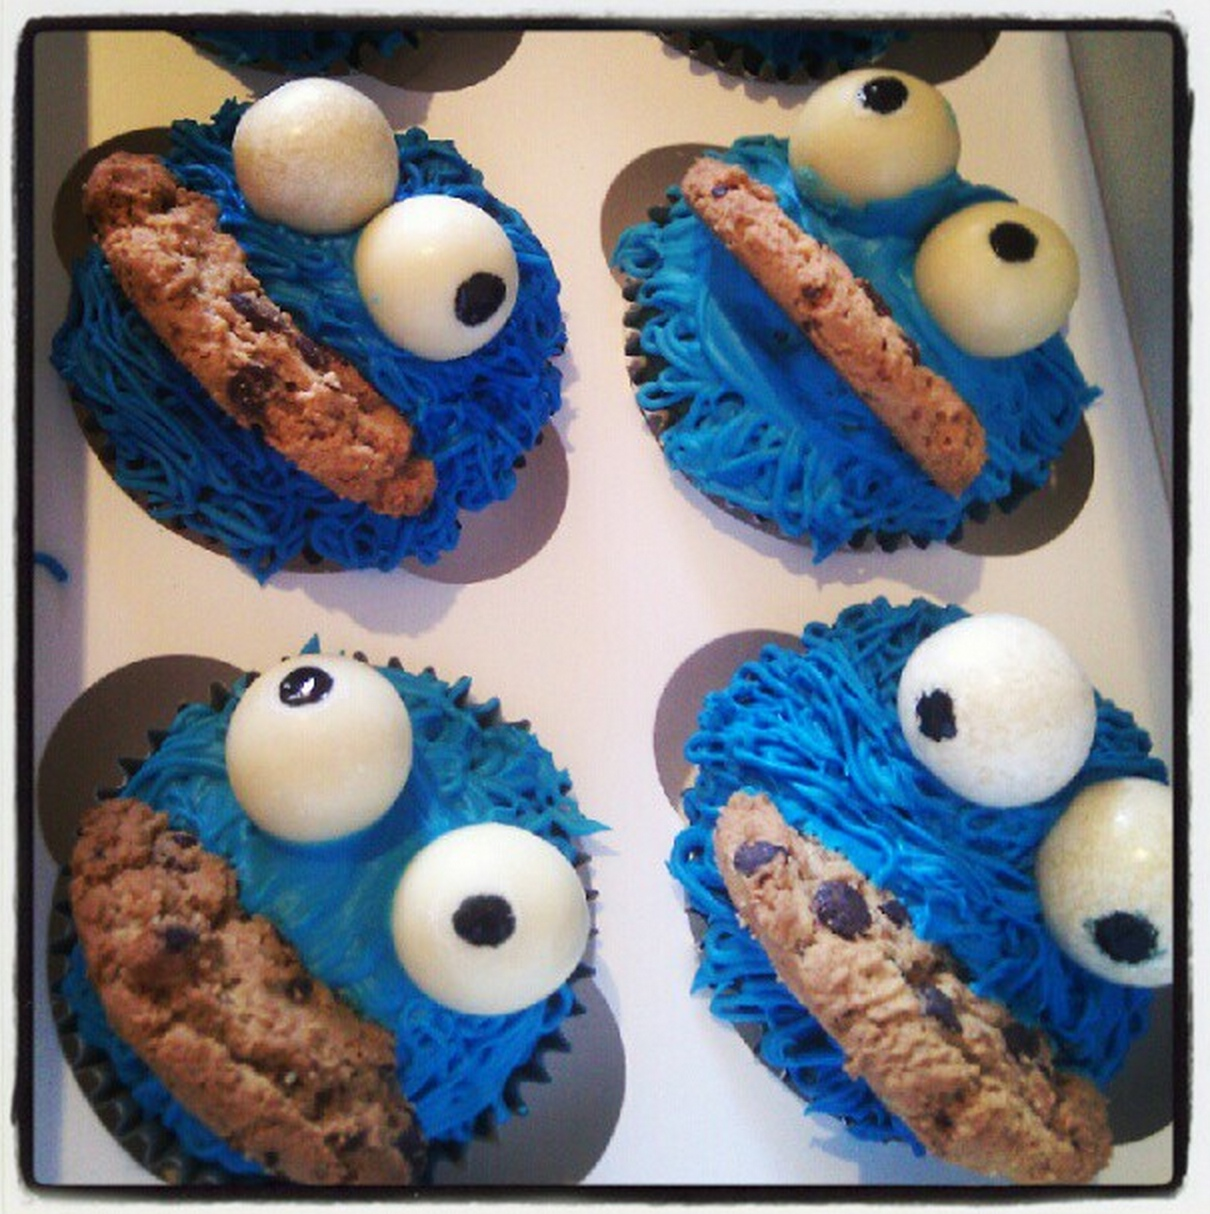 Cookie monster cupcakes (IMAGE: Enrique Dans)